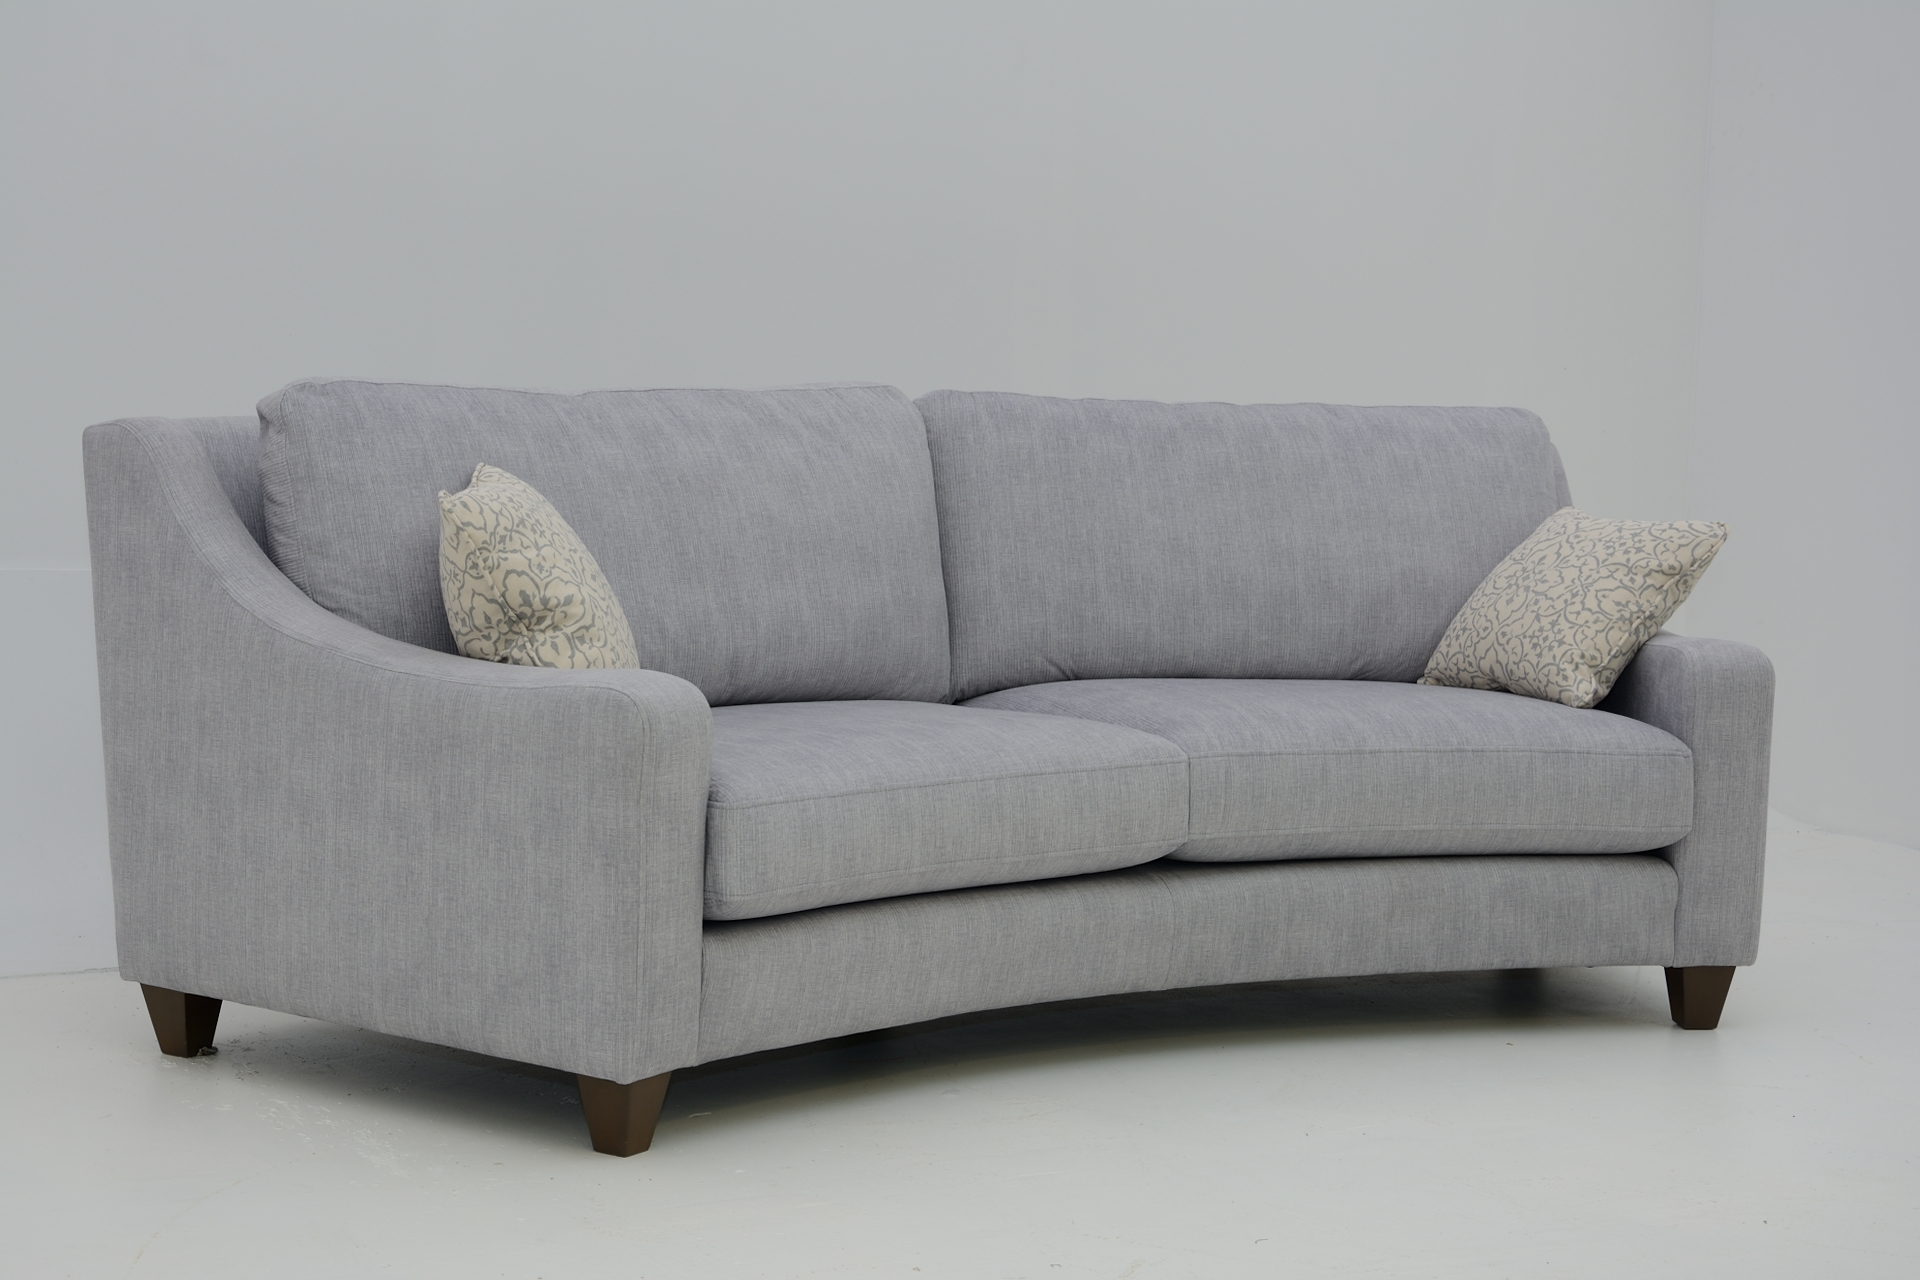 Home The Hastings Sofa Company